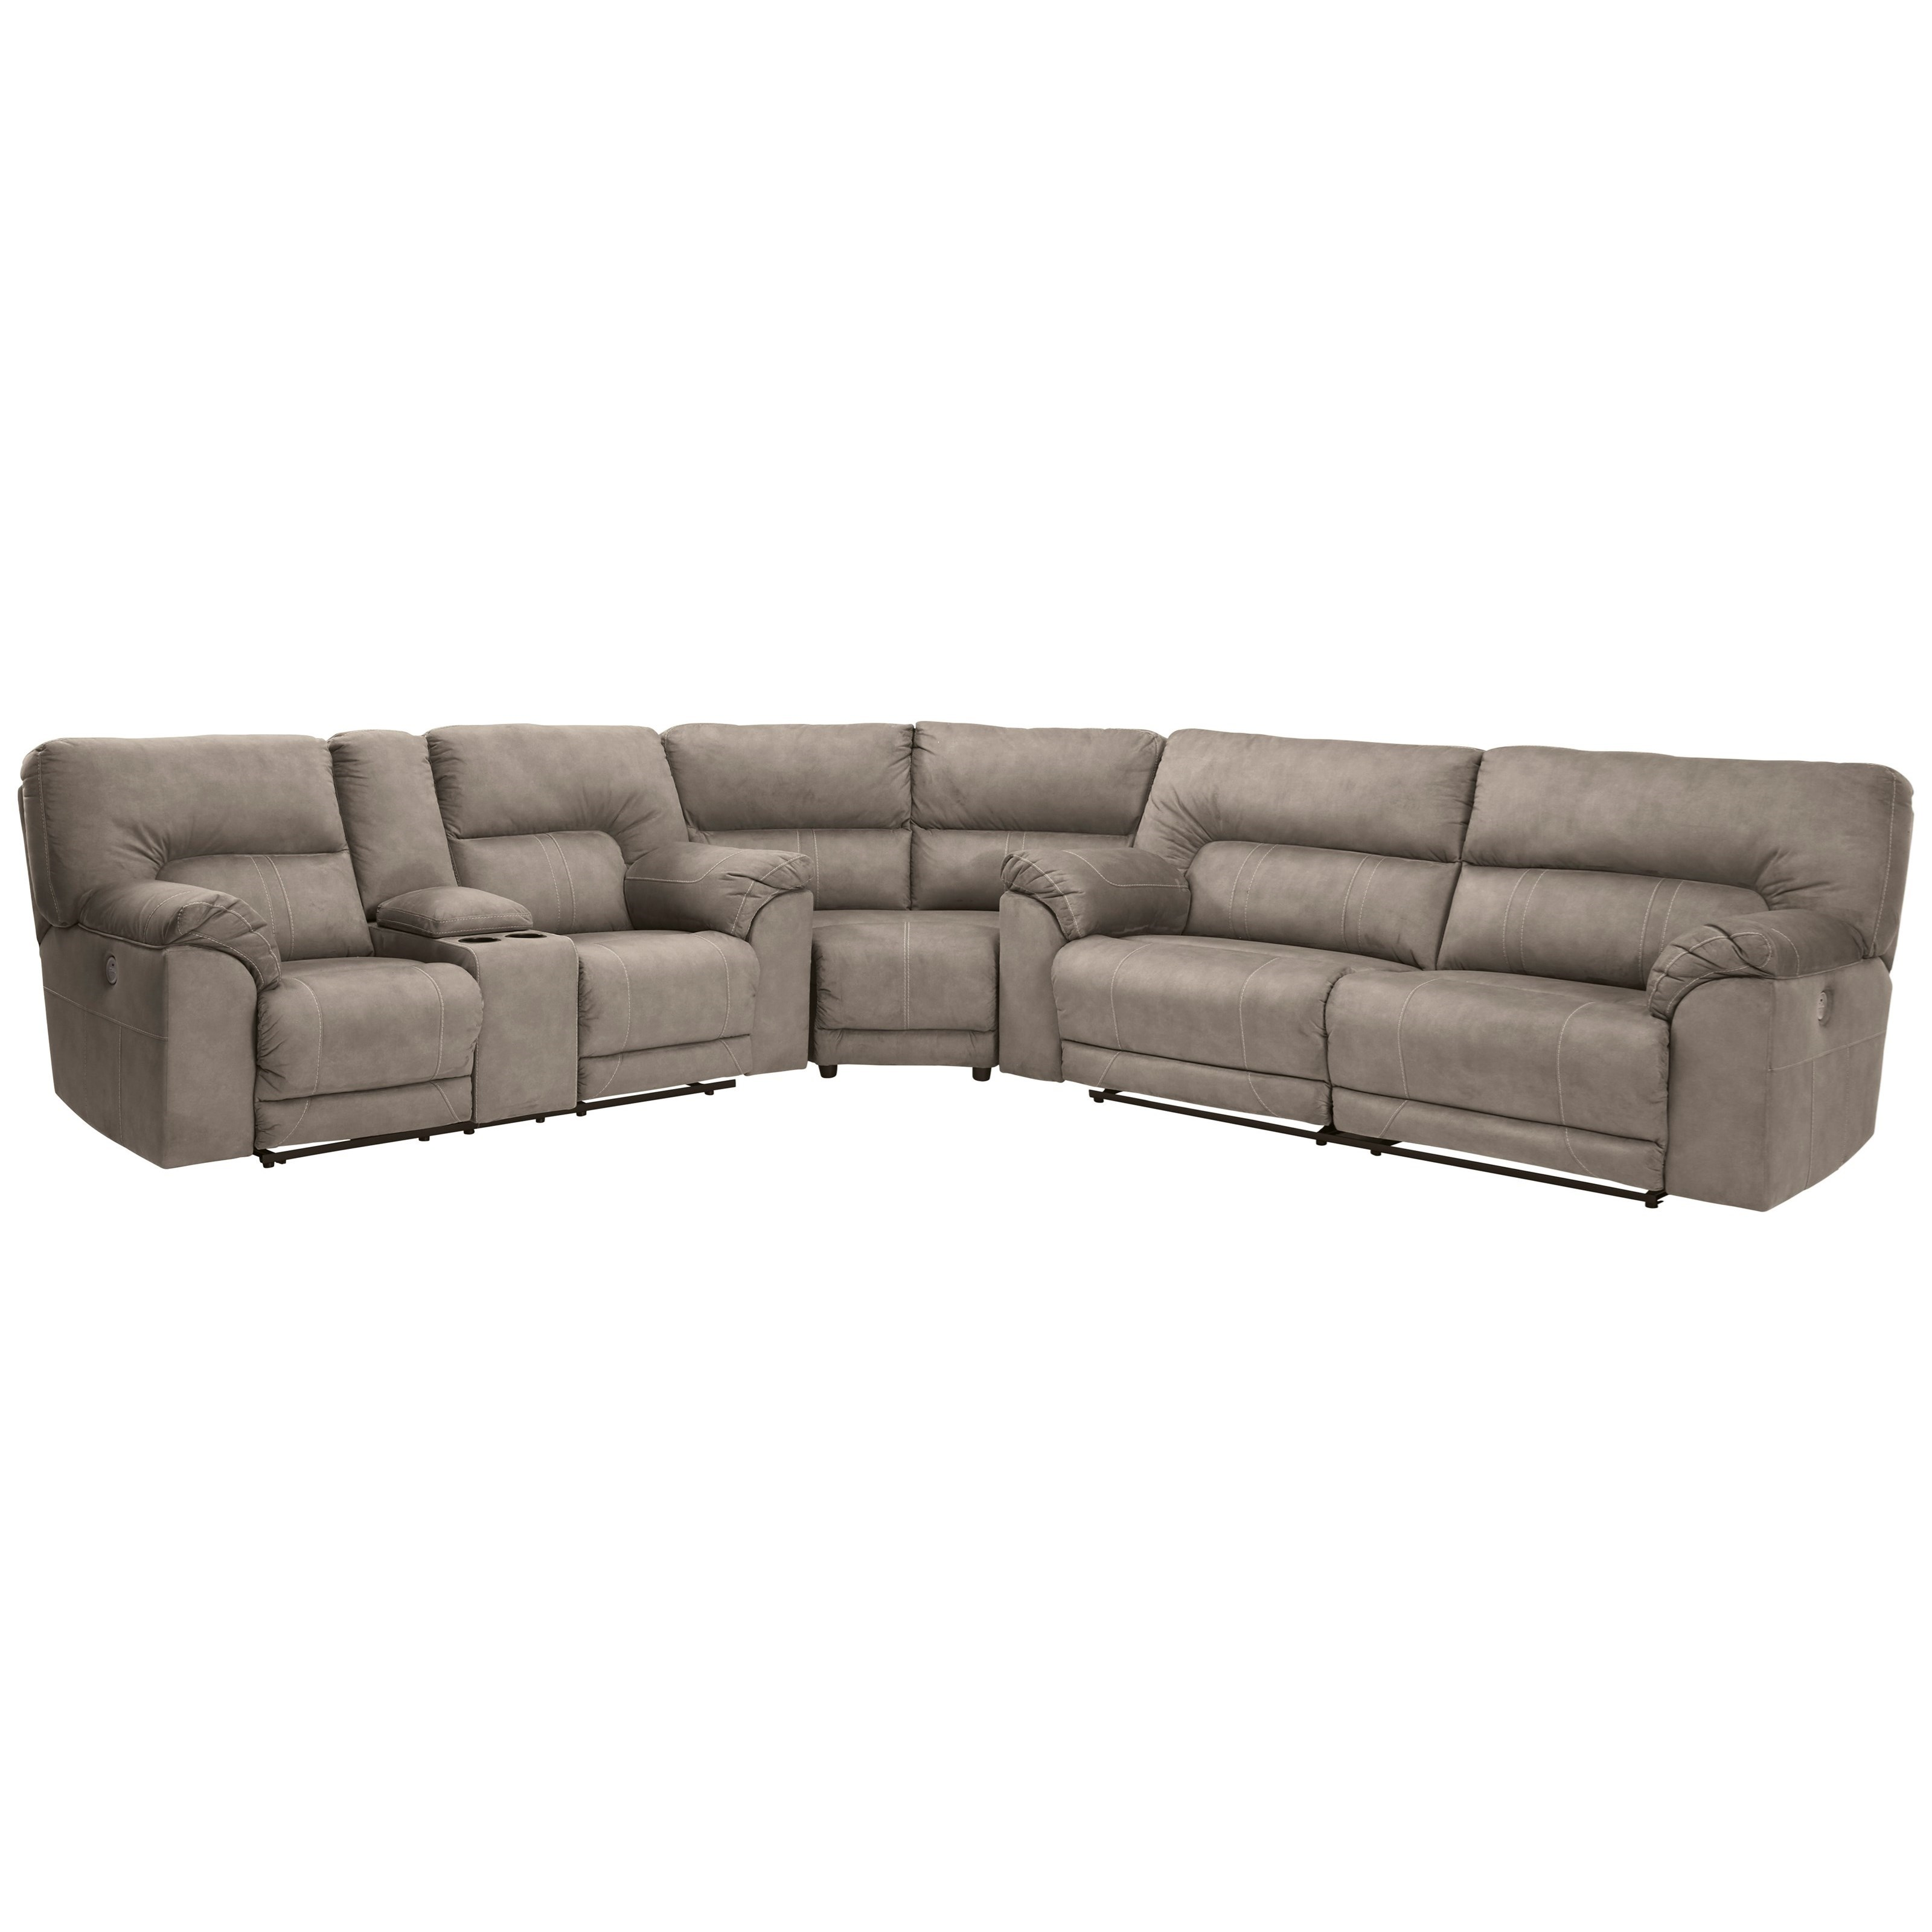 Cavalcade Power Reclining Sectional by Benchcraft at Miller Waldrop Furniture and Decor